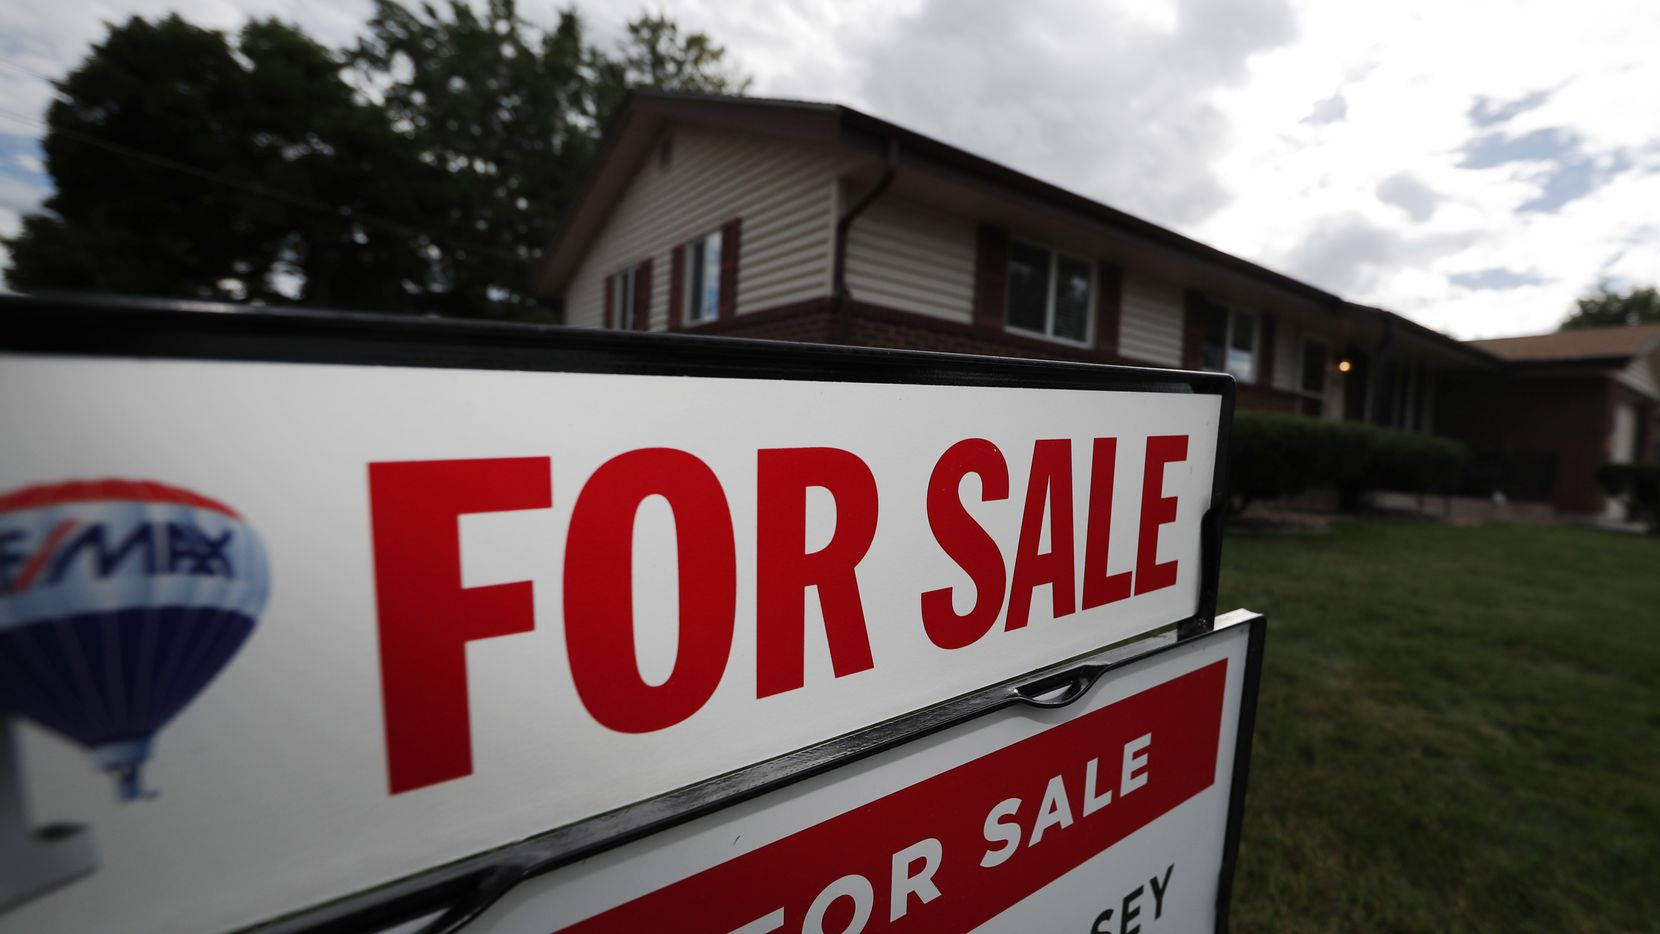 Home purchases by foreign buyers have dropped by 56% in the last two years.